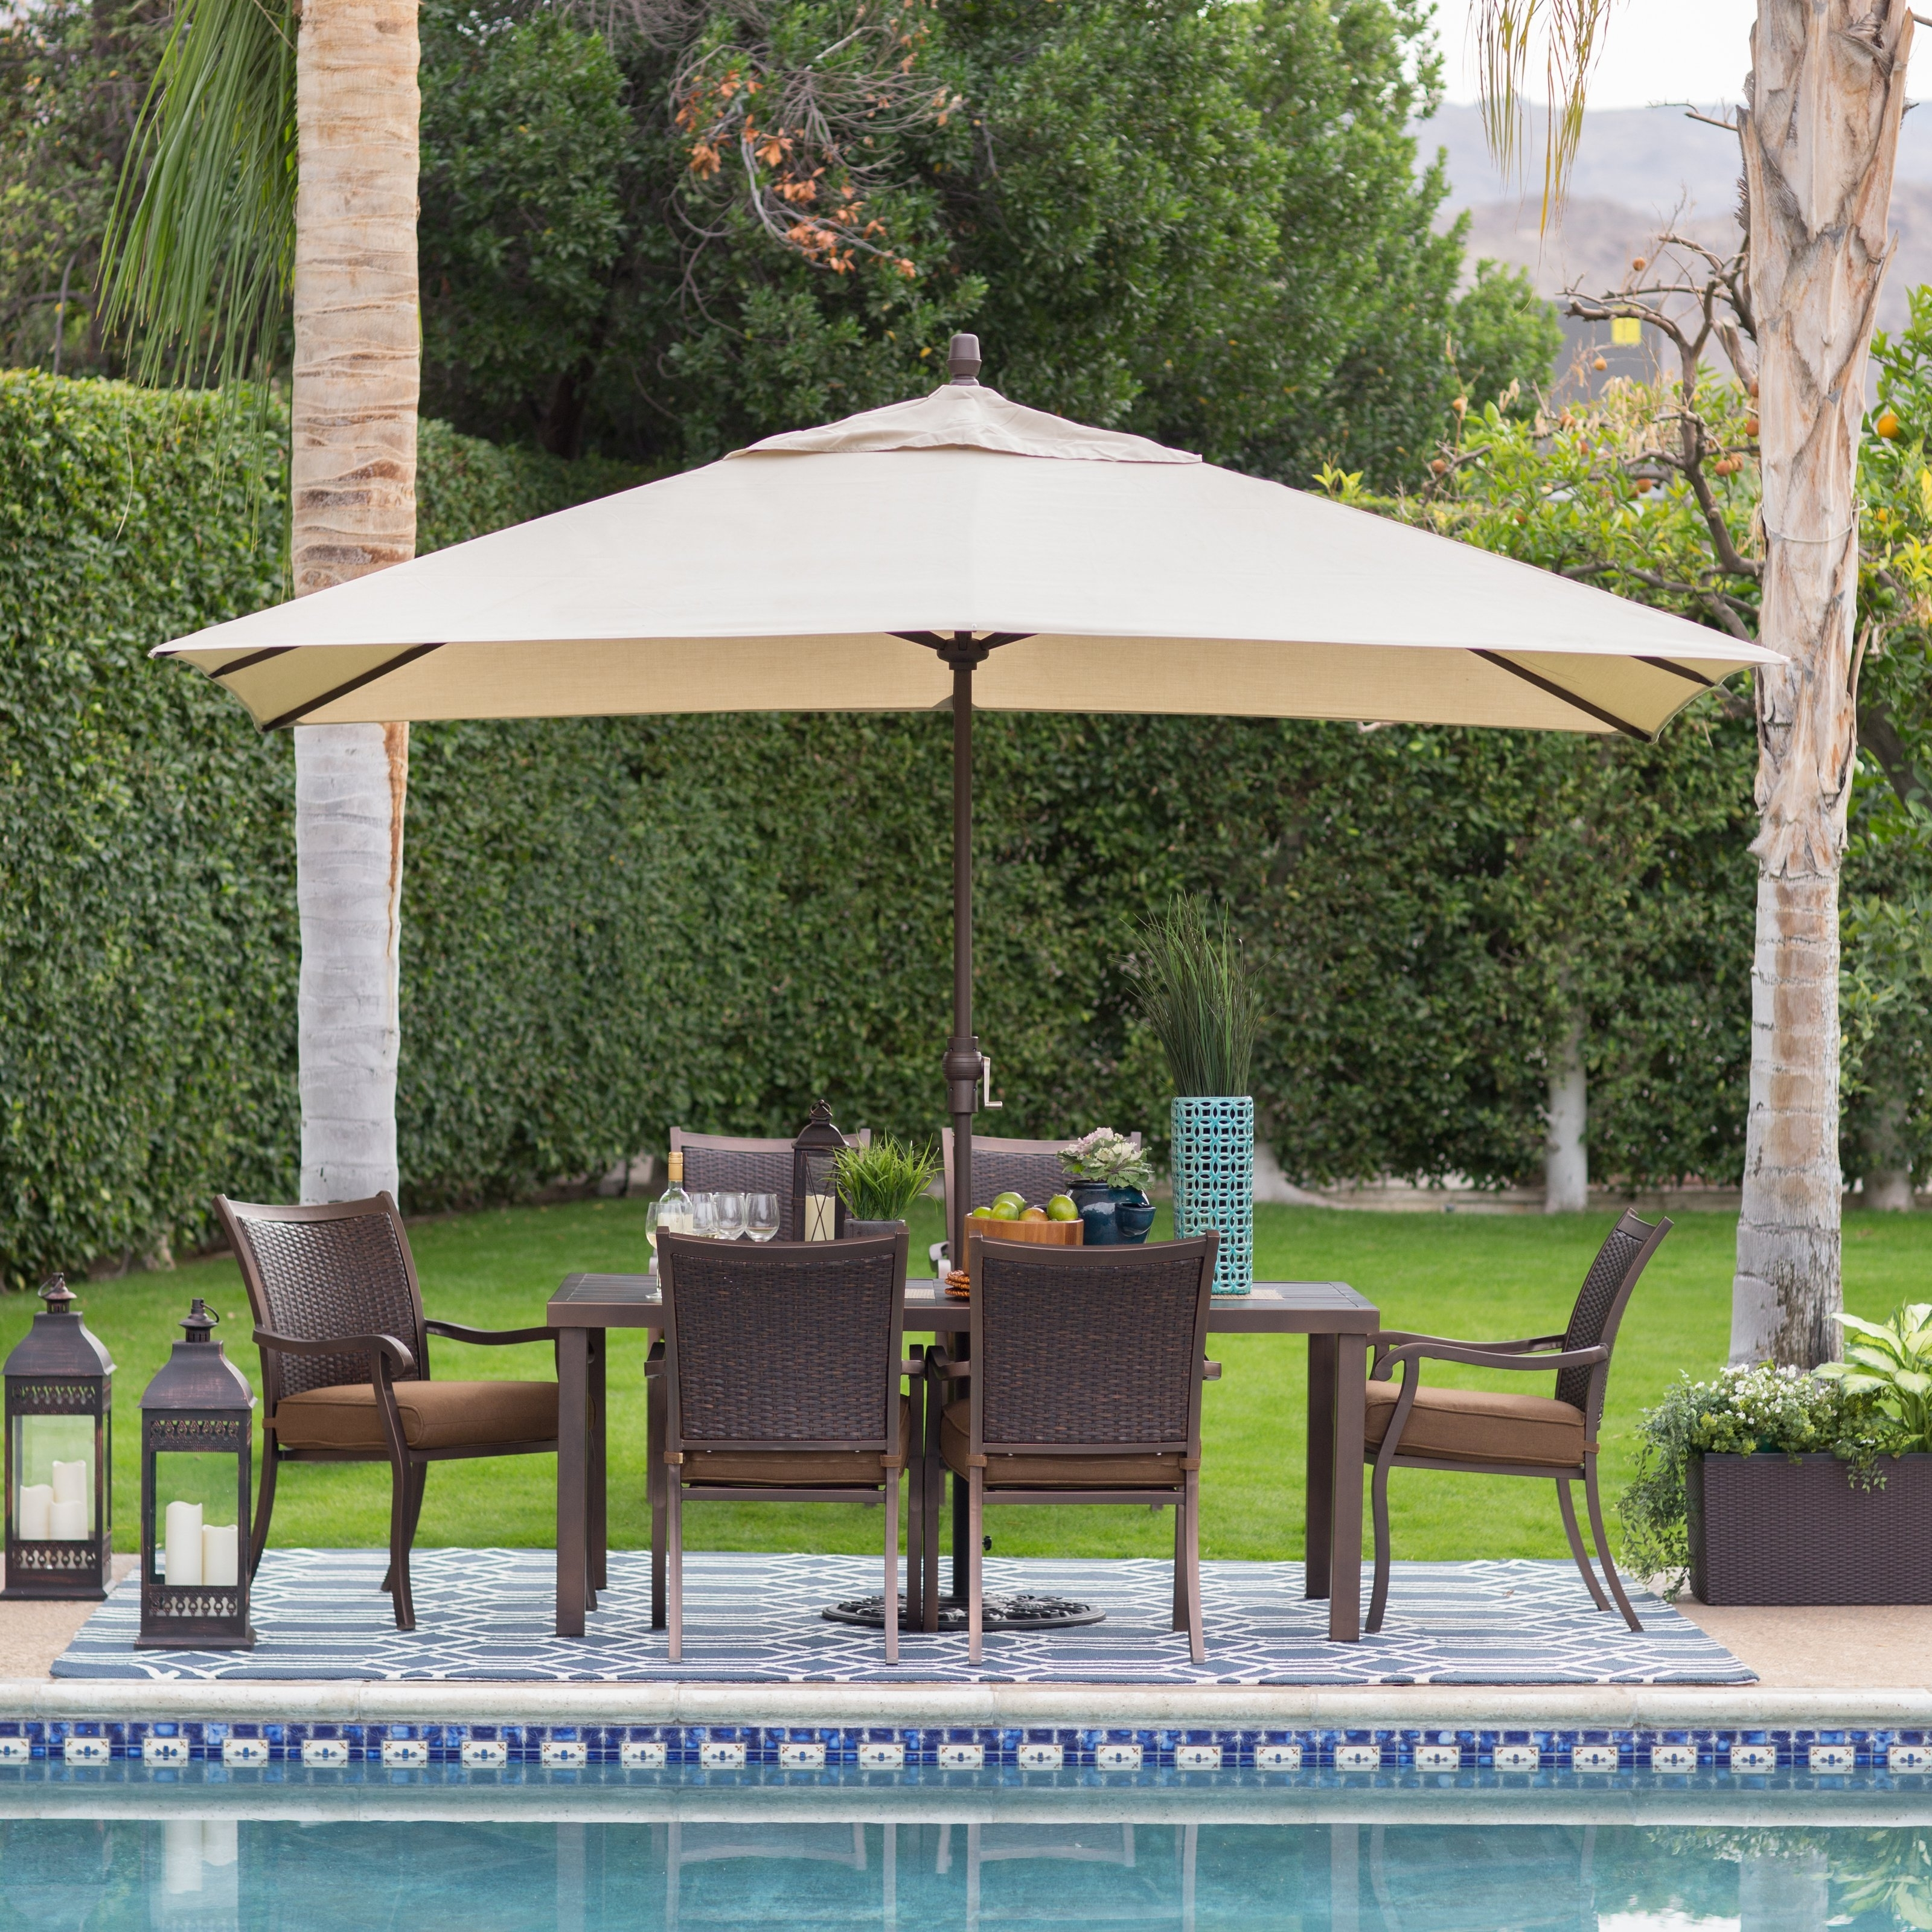 Deluxe Patio Umbrellas Intended For Most Up To Date Coral Coast 8 X 11 Ft (View 11 of 20)